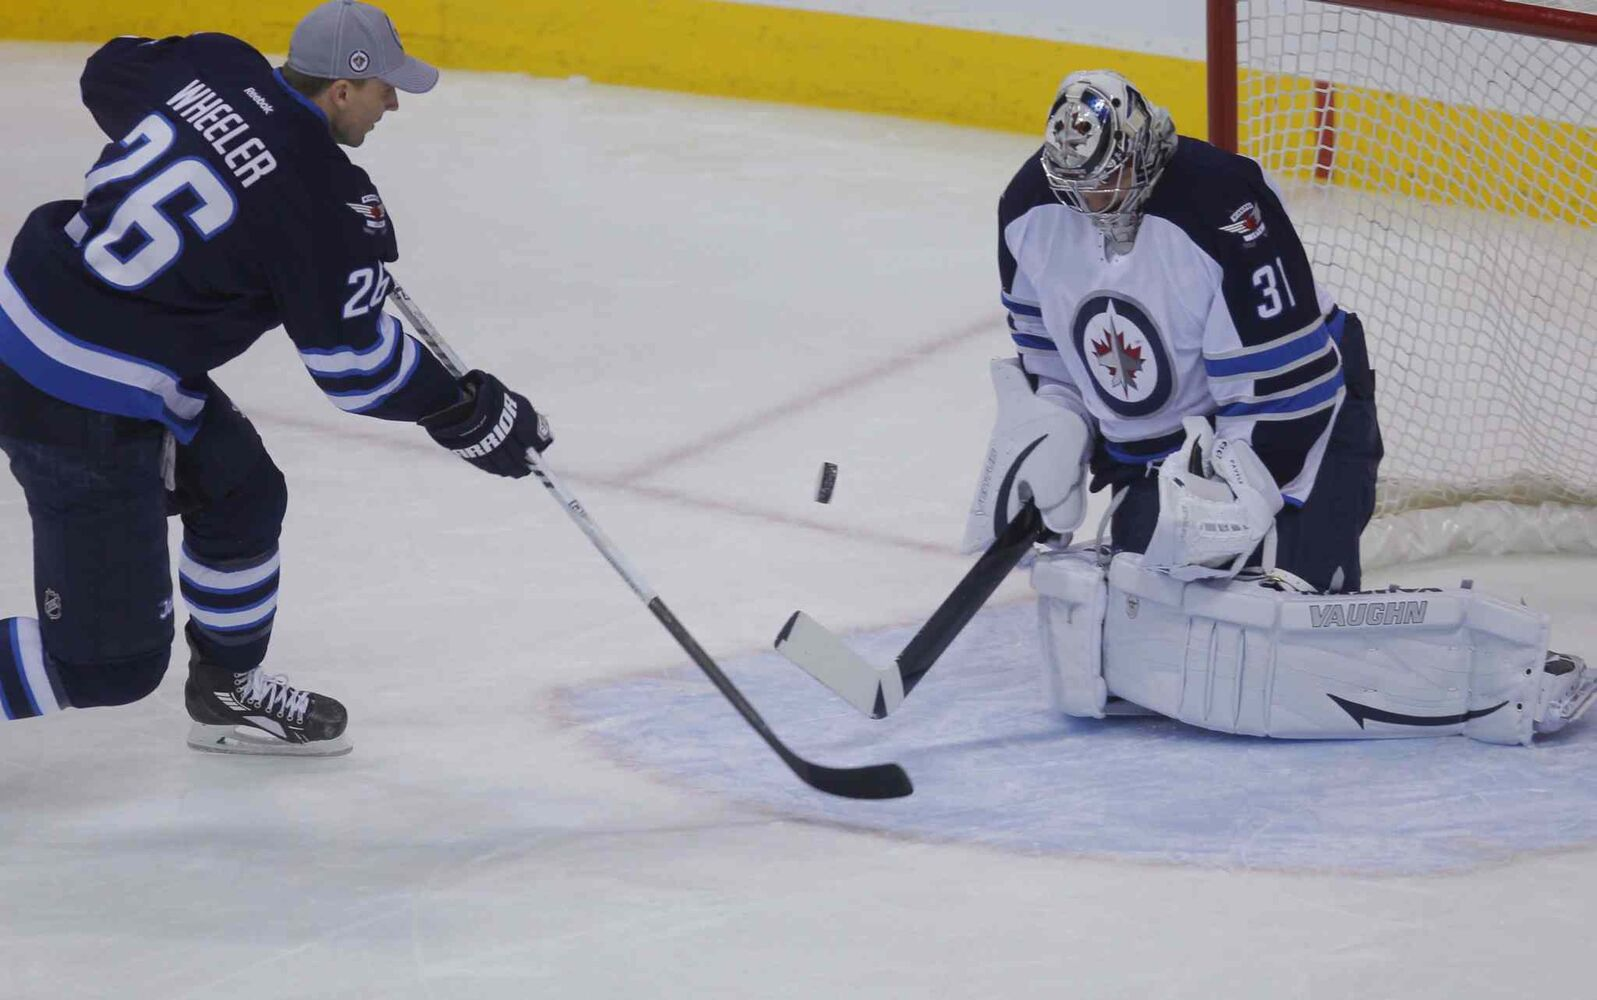 Blake Wheeler moves in on Ondrej Pavelec during the shootout portion of the skills competition. (Boris Minkevich / Winnipeg Free Press)